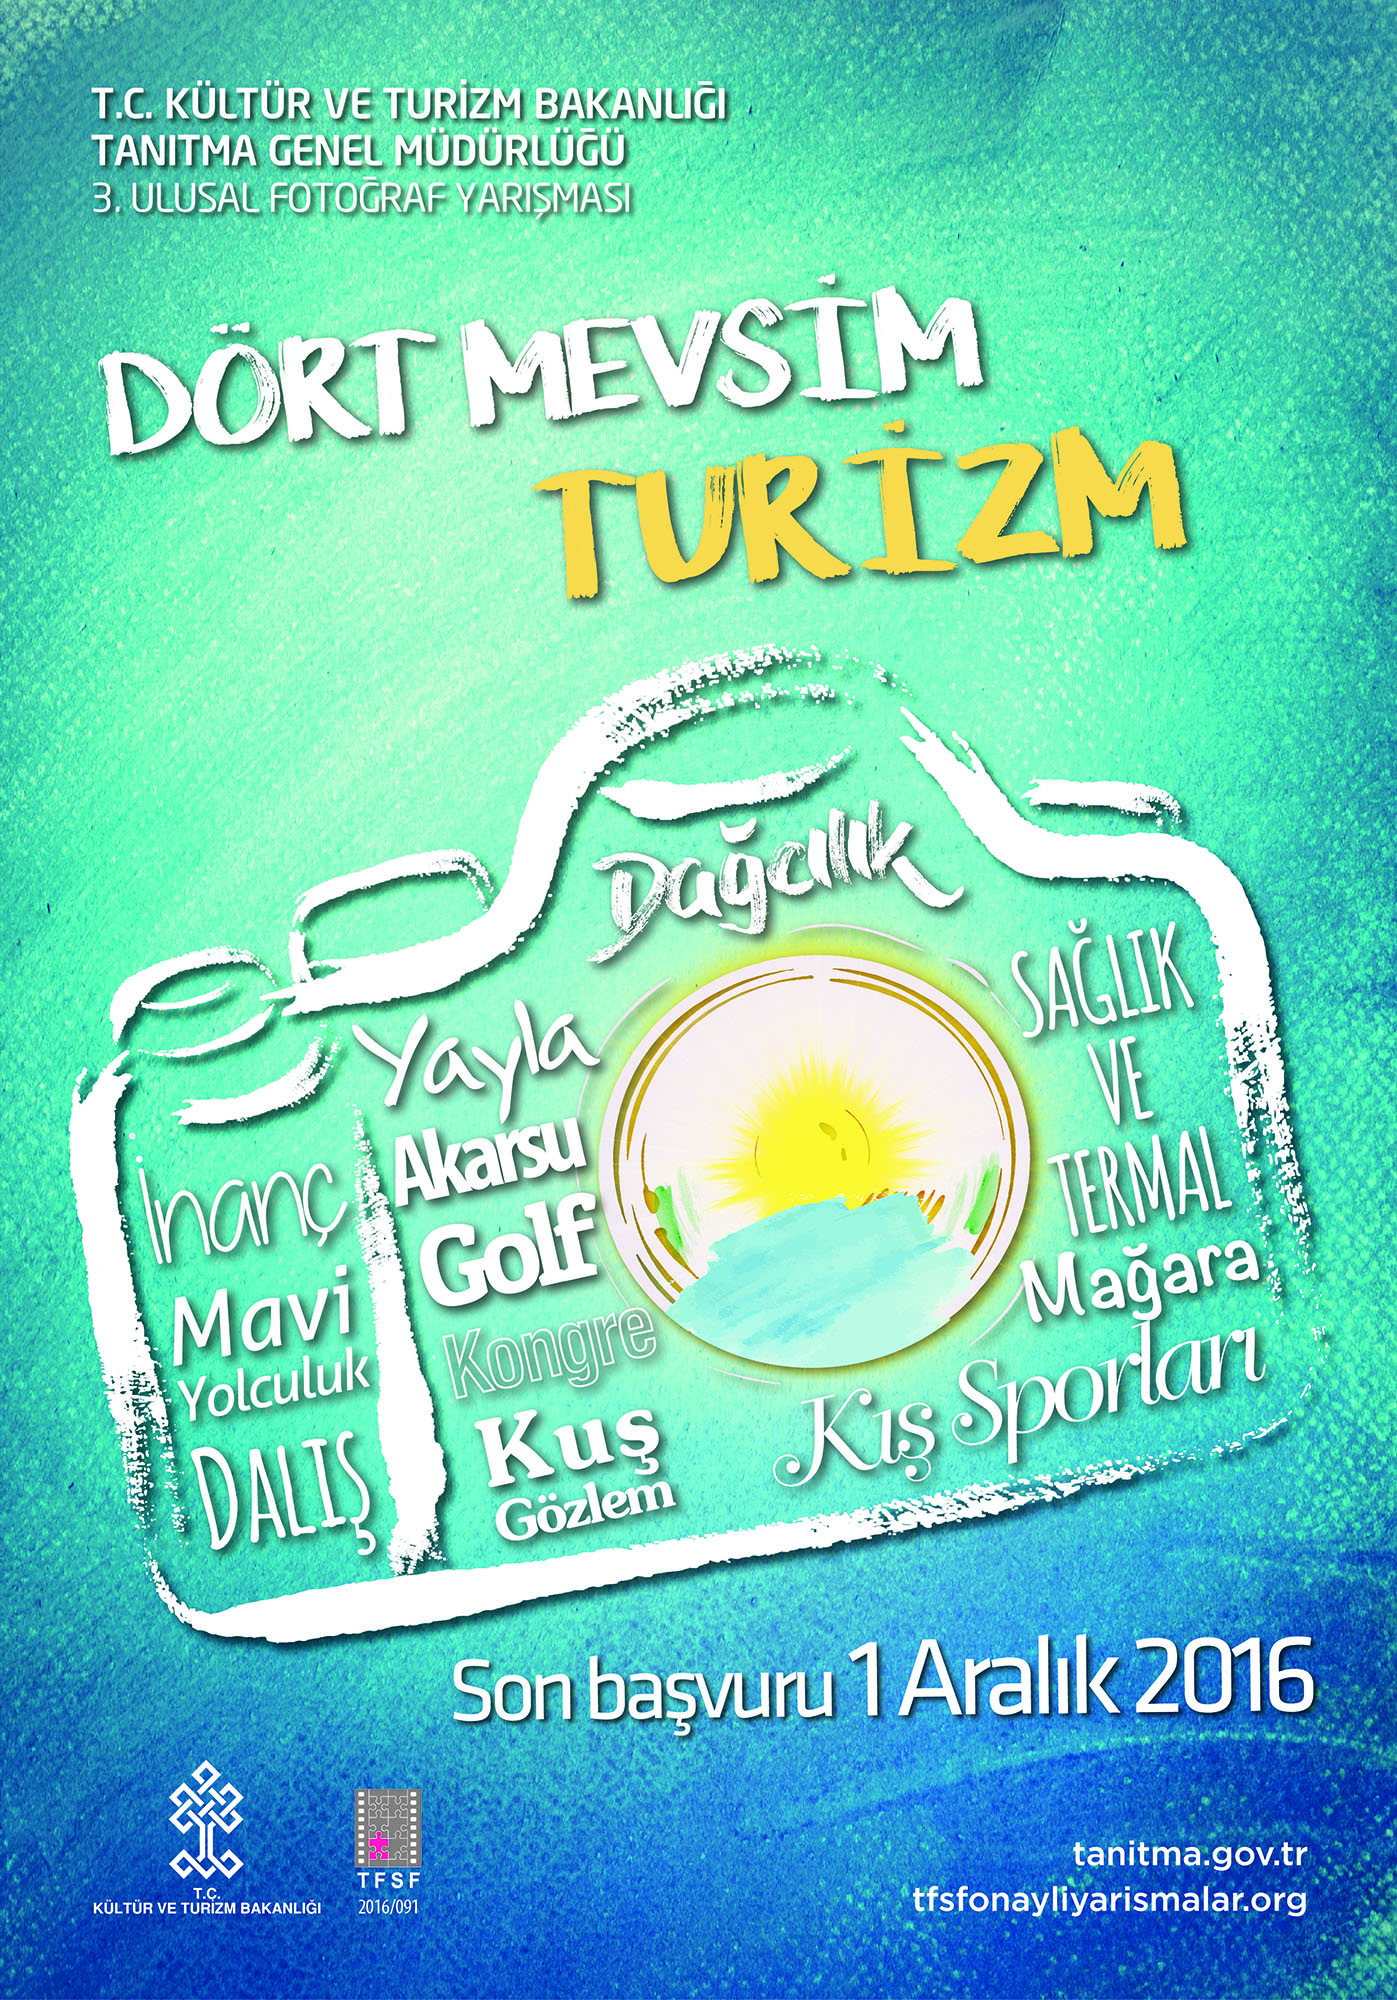 Alternatif Turizm Afis